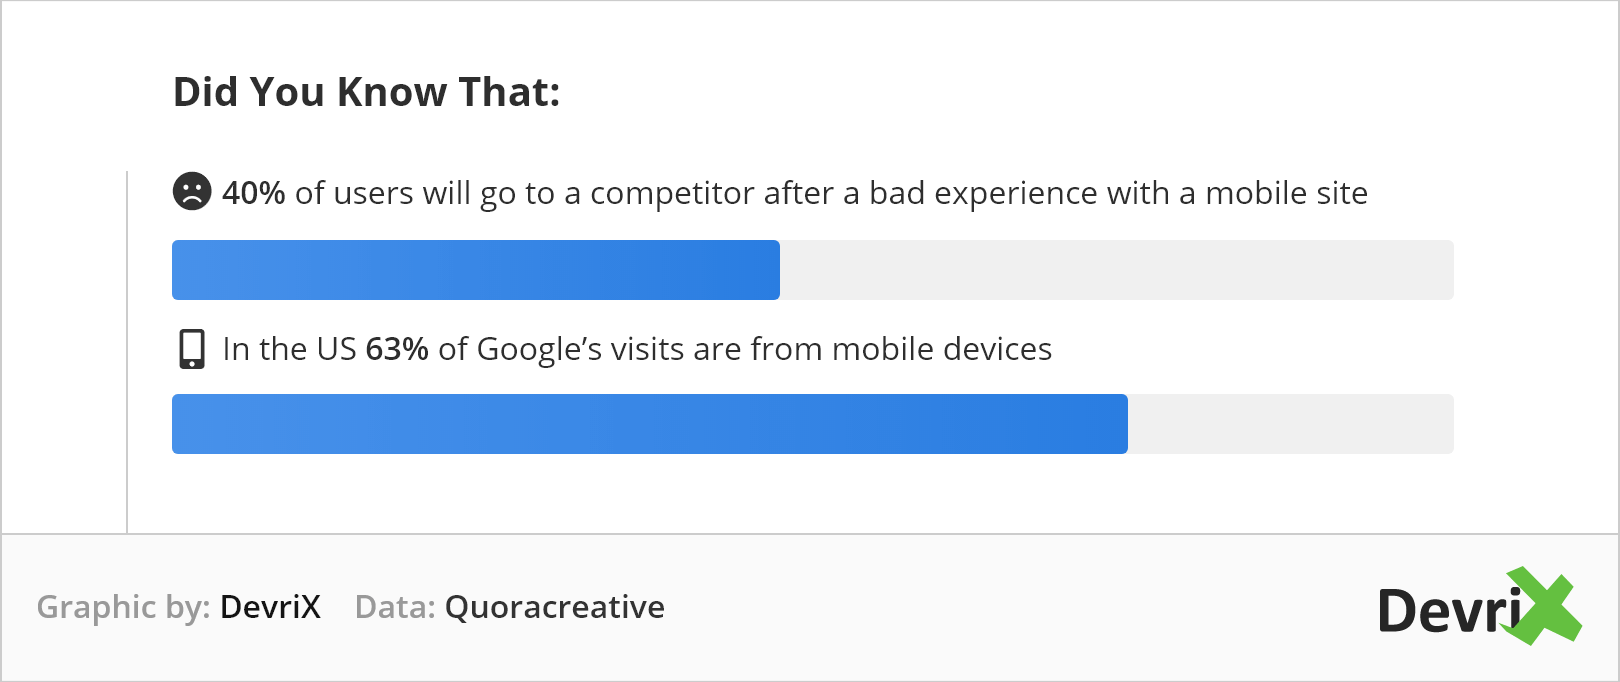 customers are using more and more mobile devices.